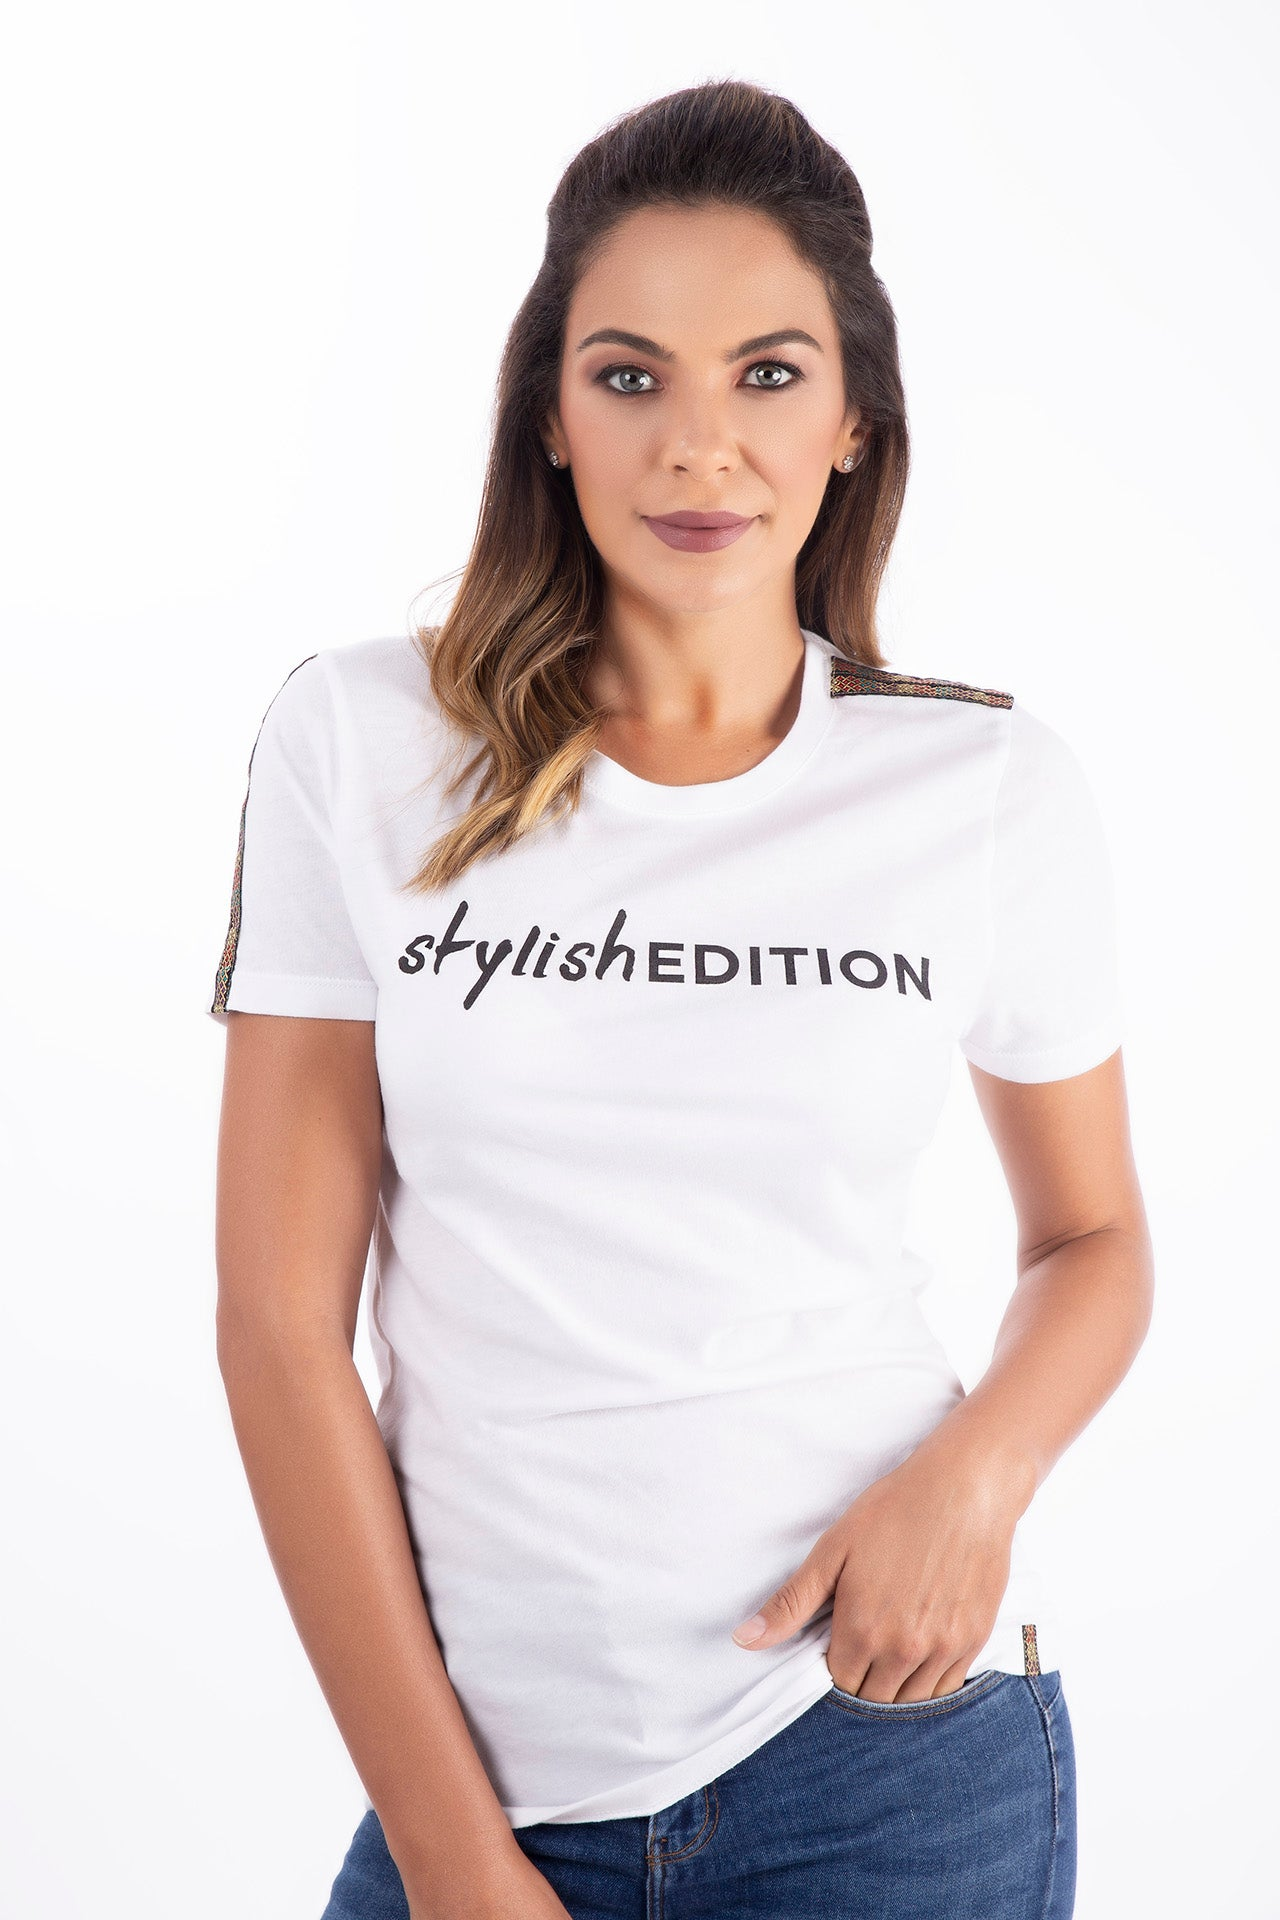 Stylish Edition T-Shirt T-Shirts - artTECA